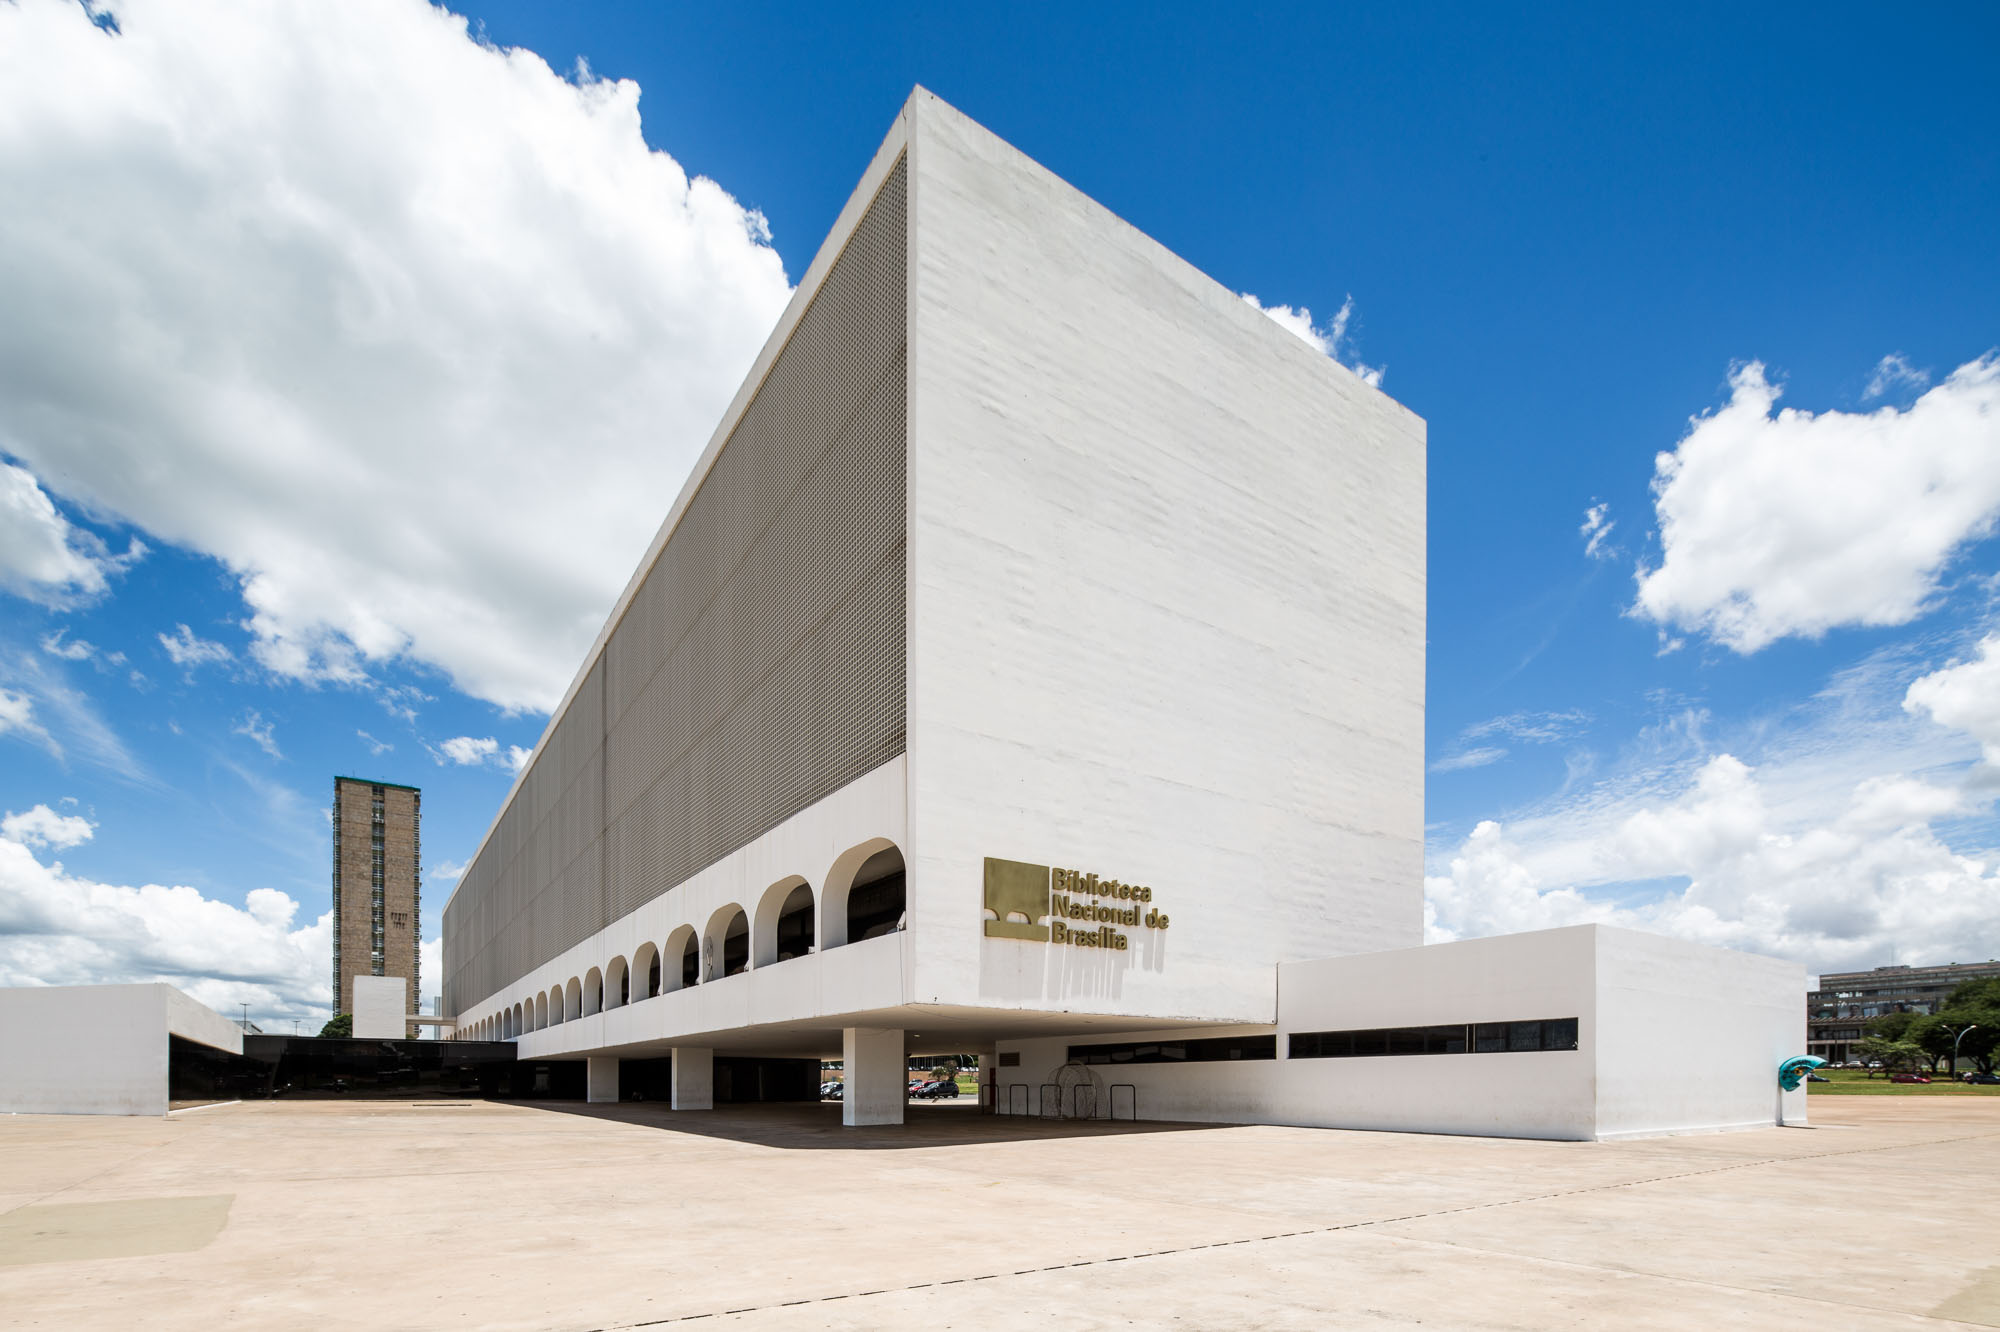 Building of the National Library of Brazil with perspective corrected